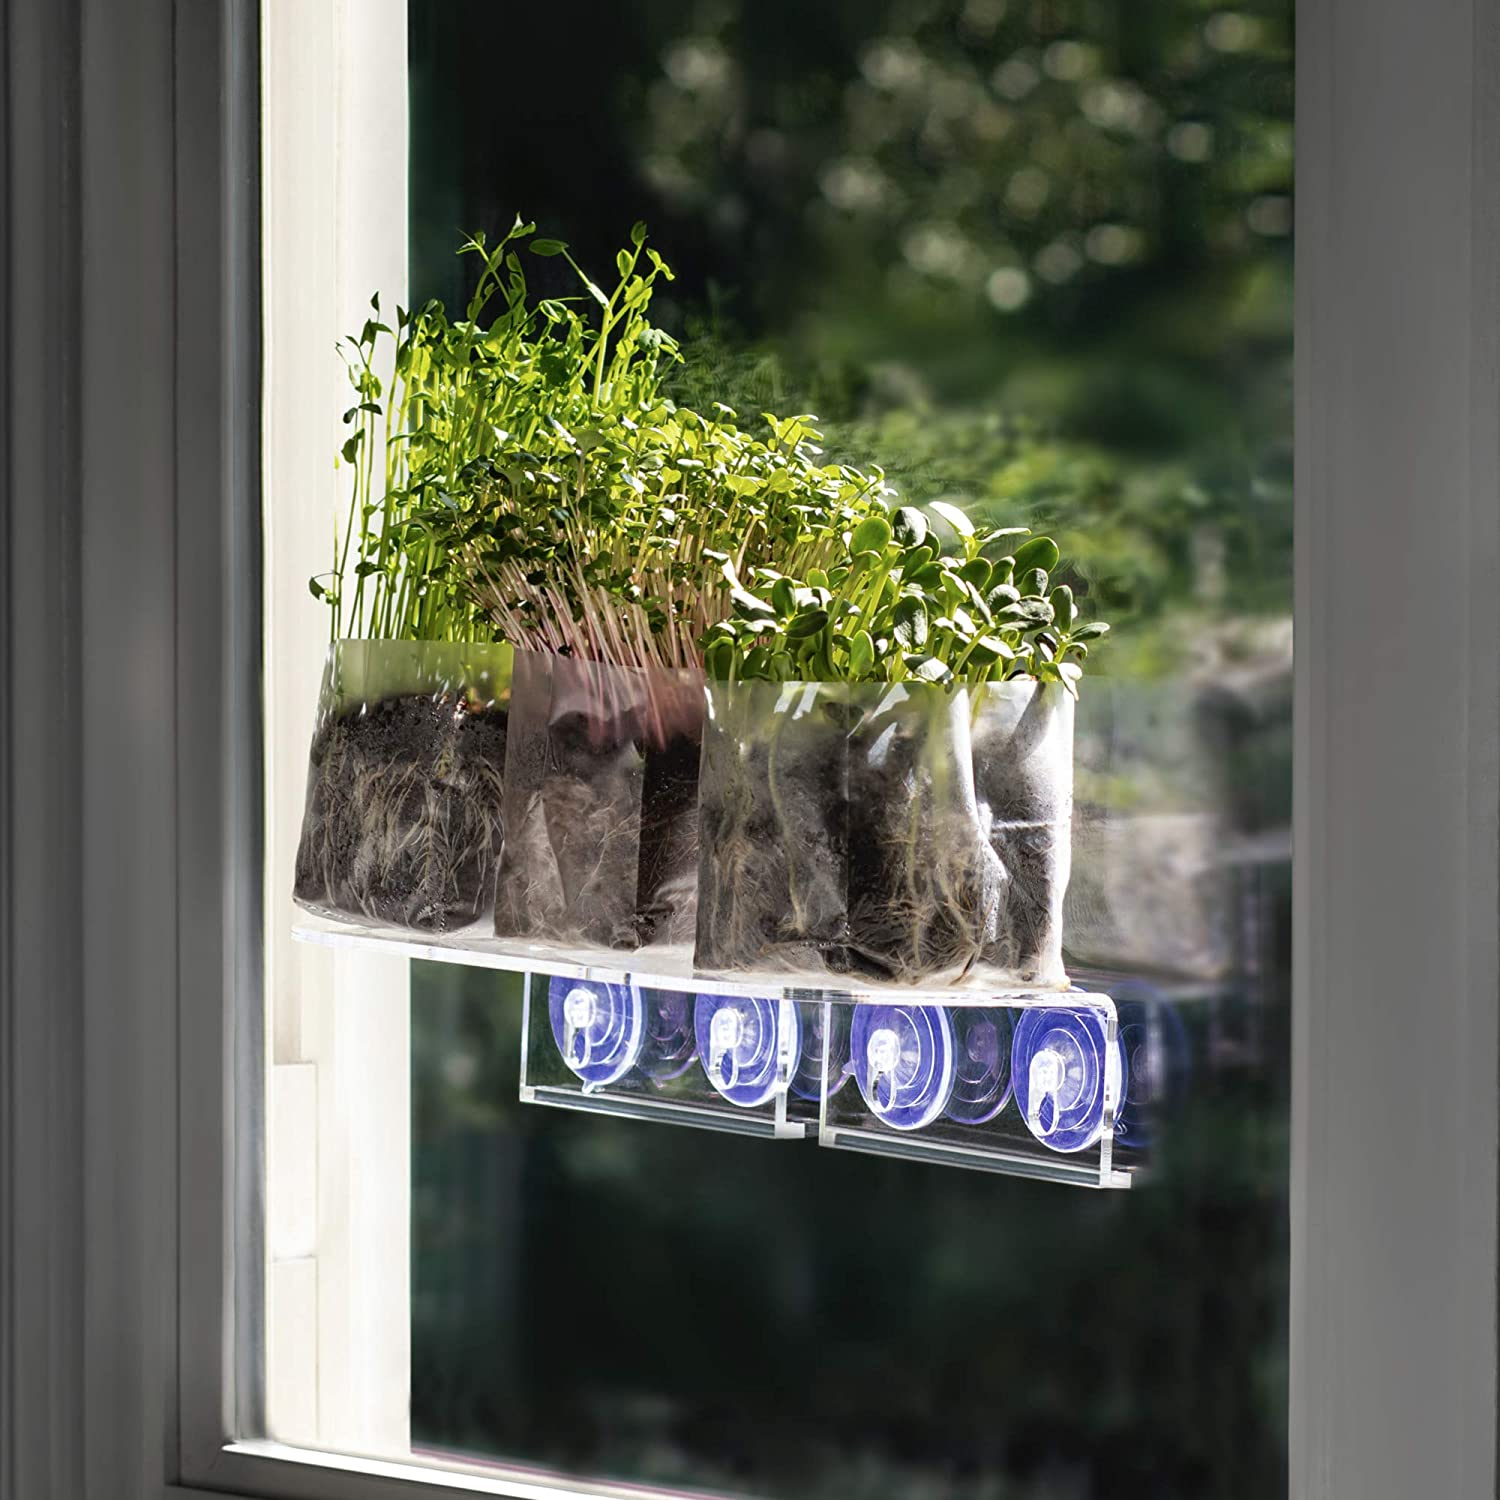 Window Garden Double Veg Ledge Shelf Pop Up Microgreens Kit Bundle - Grow Superfood on Your Indoor Window. 3 Varieties (Sunflower, Radish and Pea Shoots) Easy to Sprout, Out of Your Way, in The Sun.